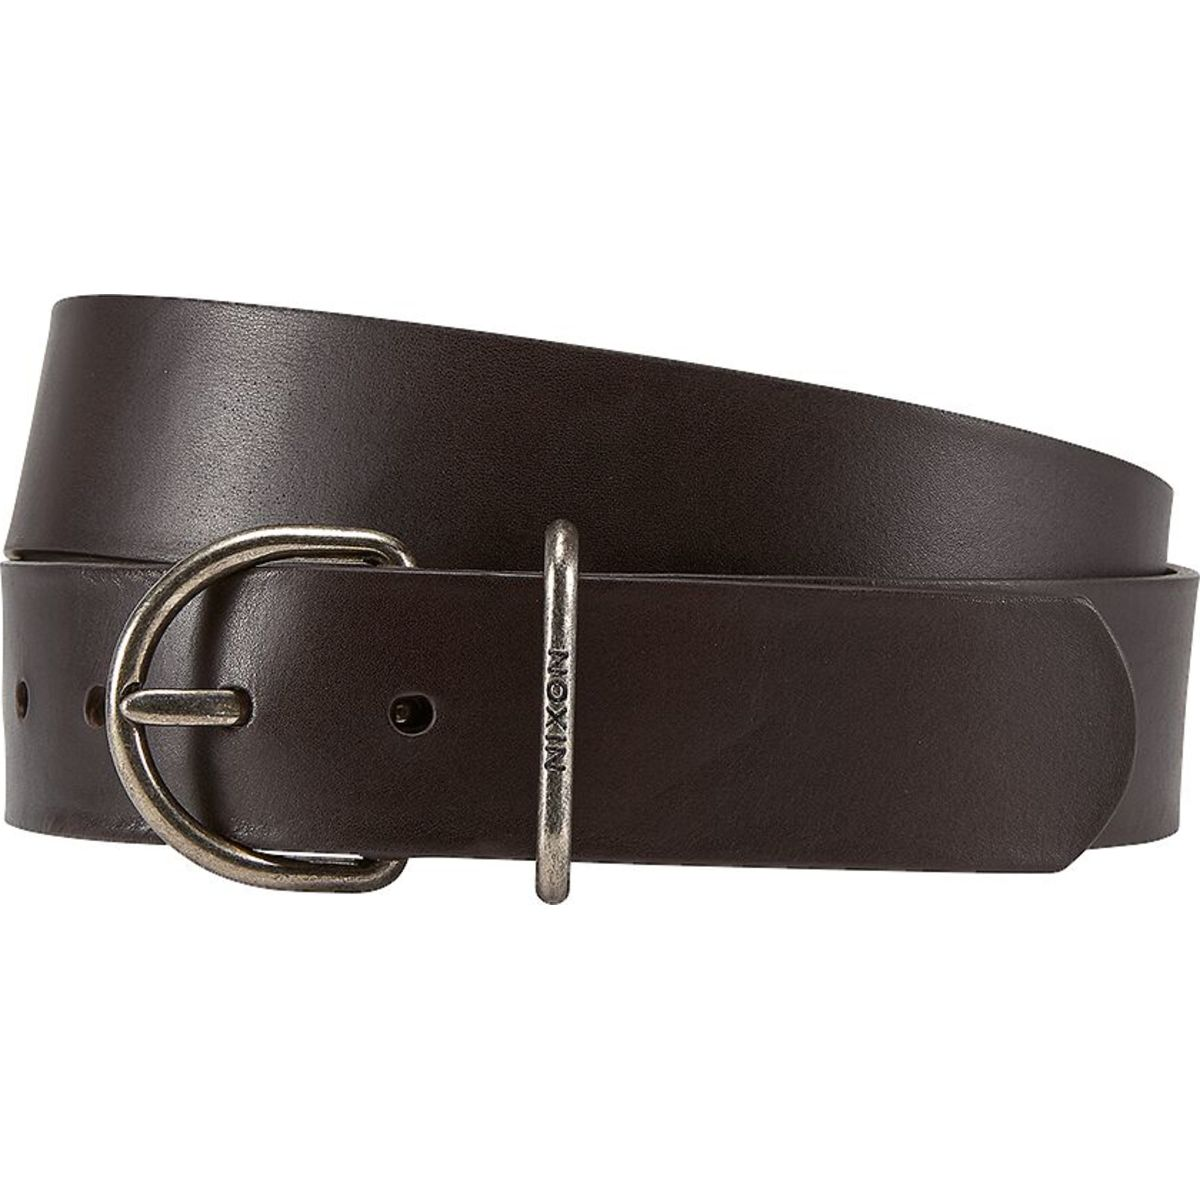 Steele Leather Belt